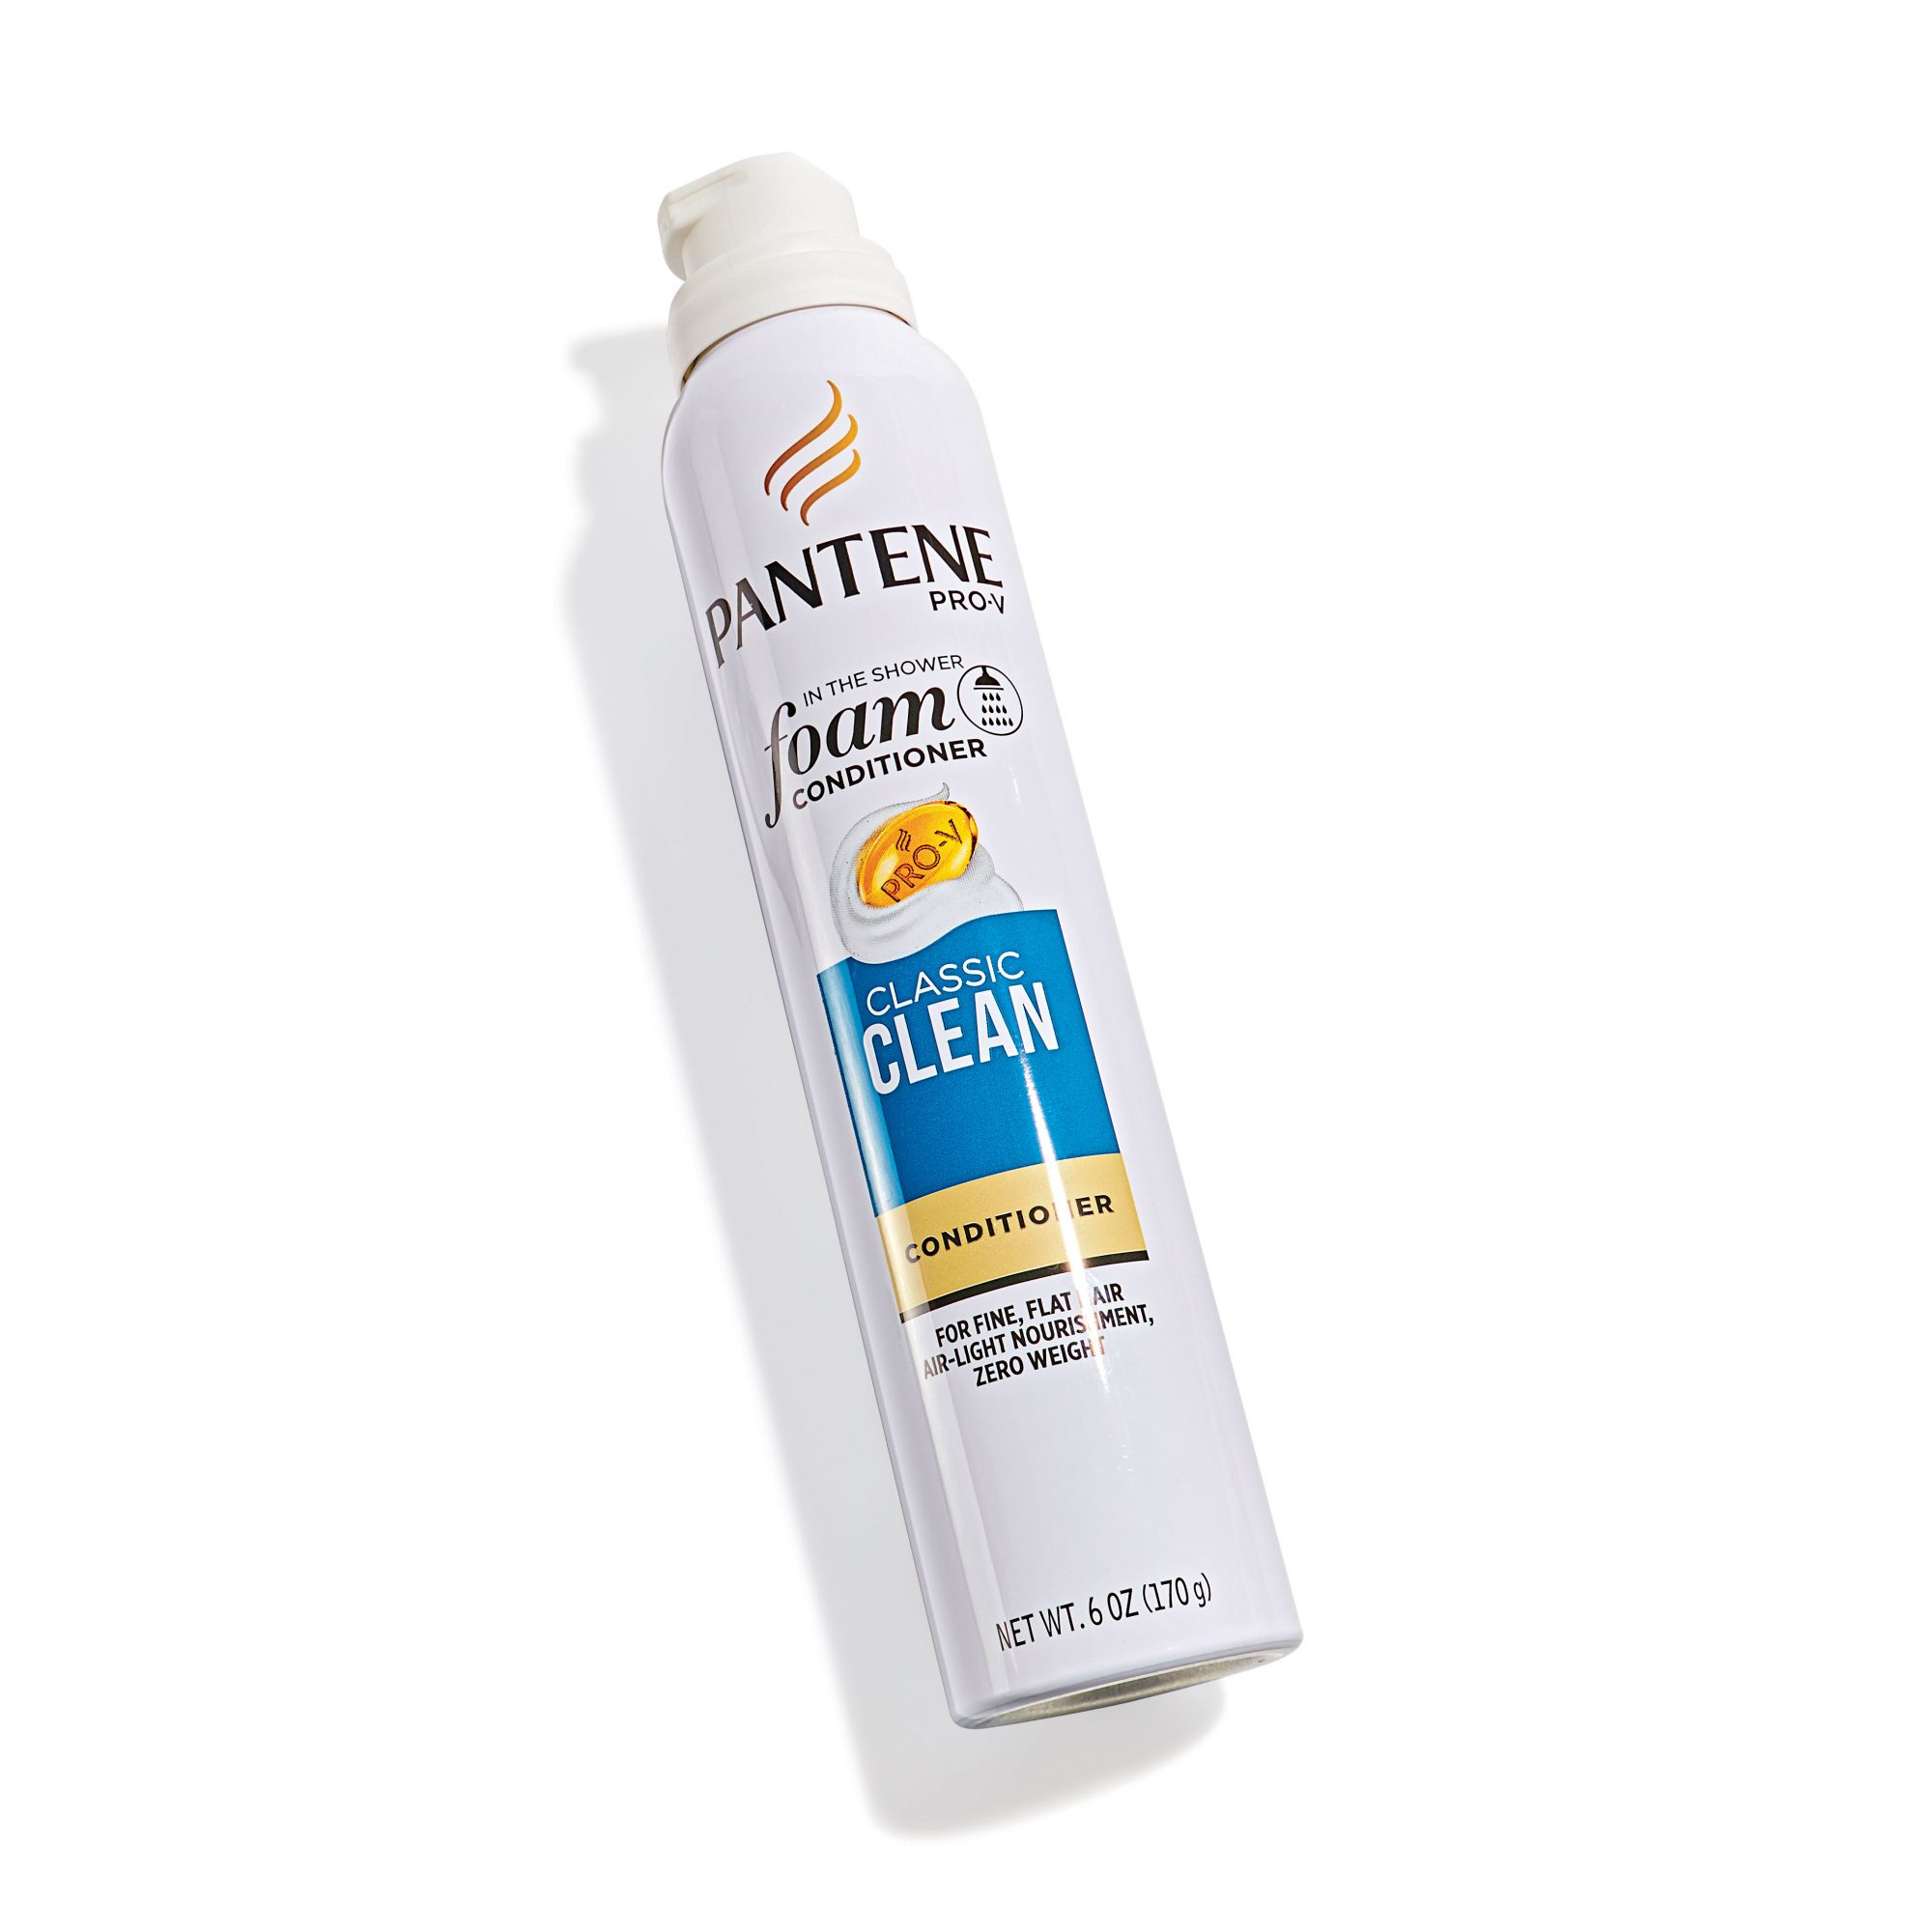 Classic Clean Pantene In the Shower Foam Conditioner